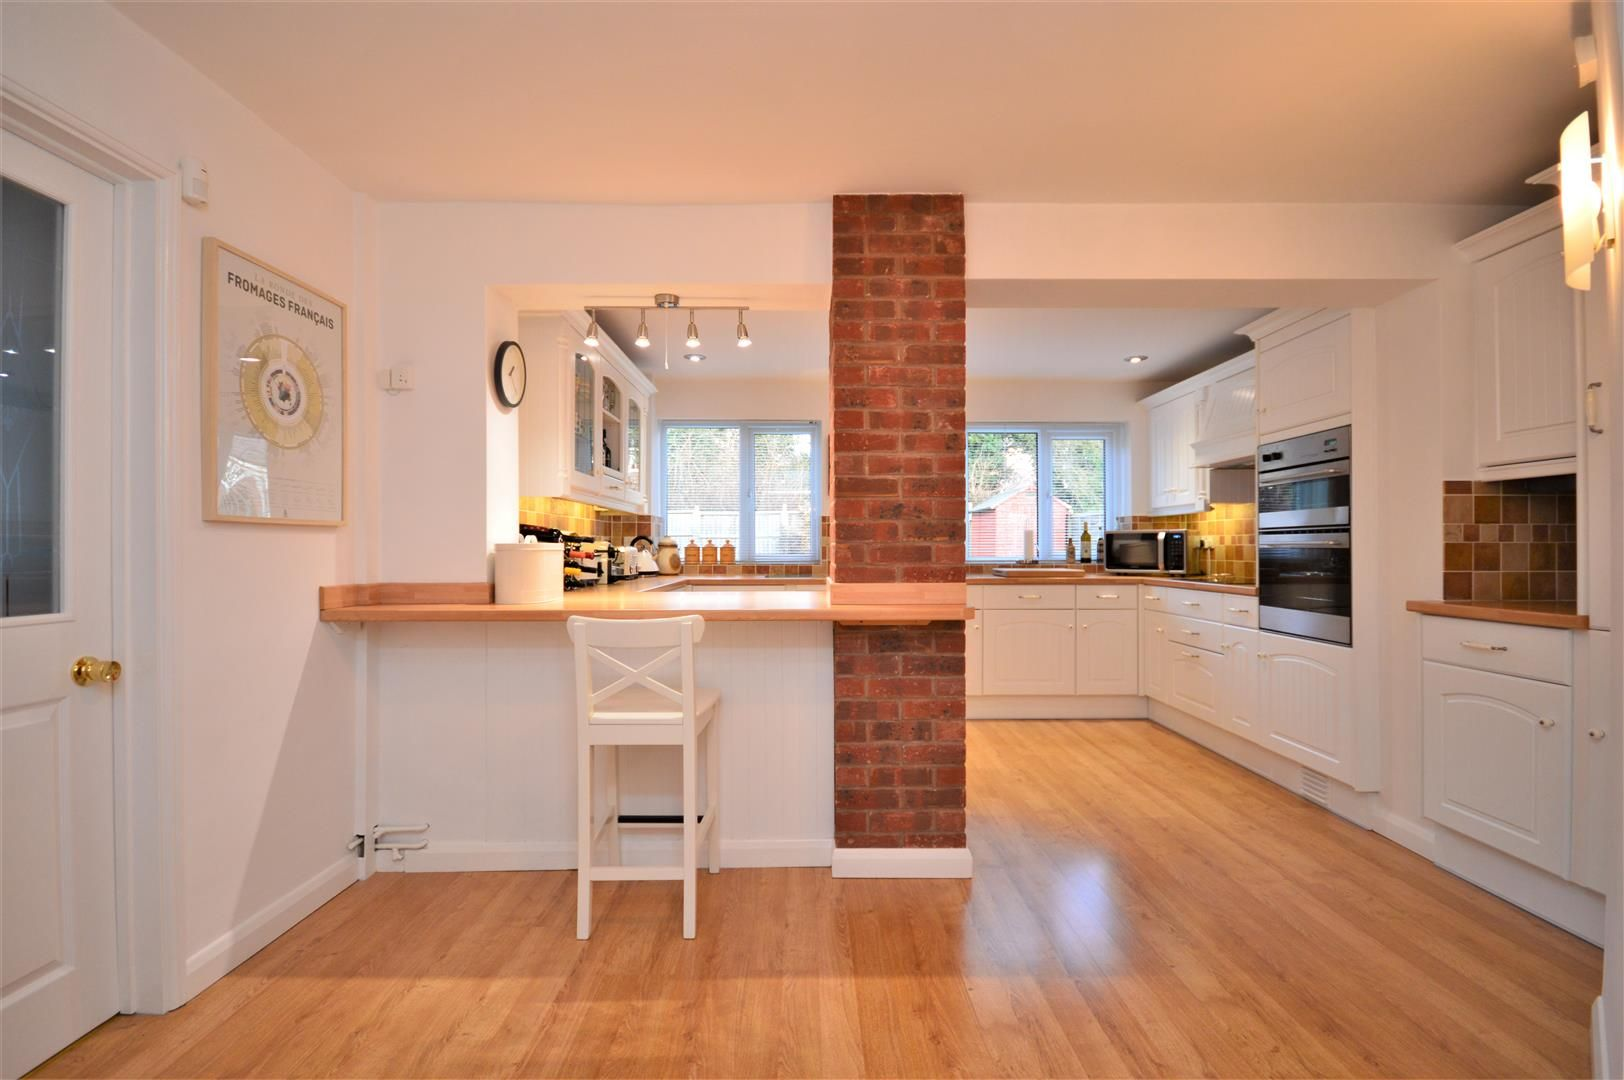 4 bed detached for sale in Hereford 3